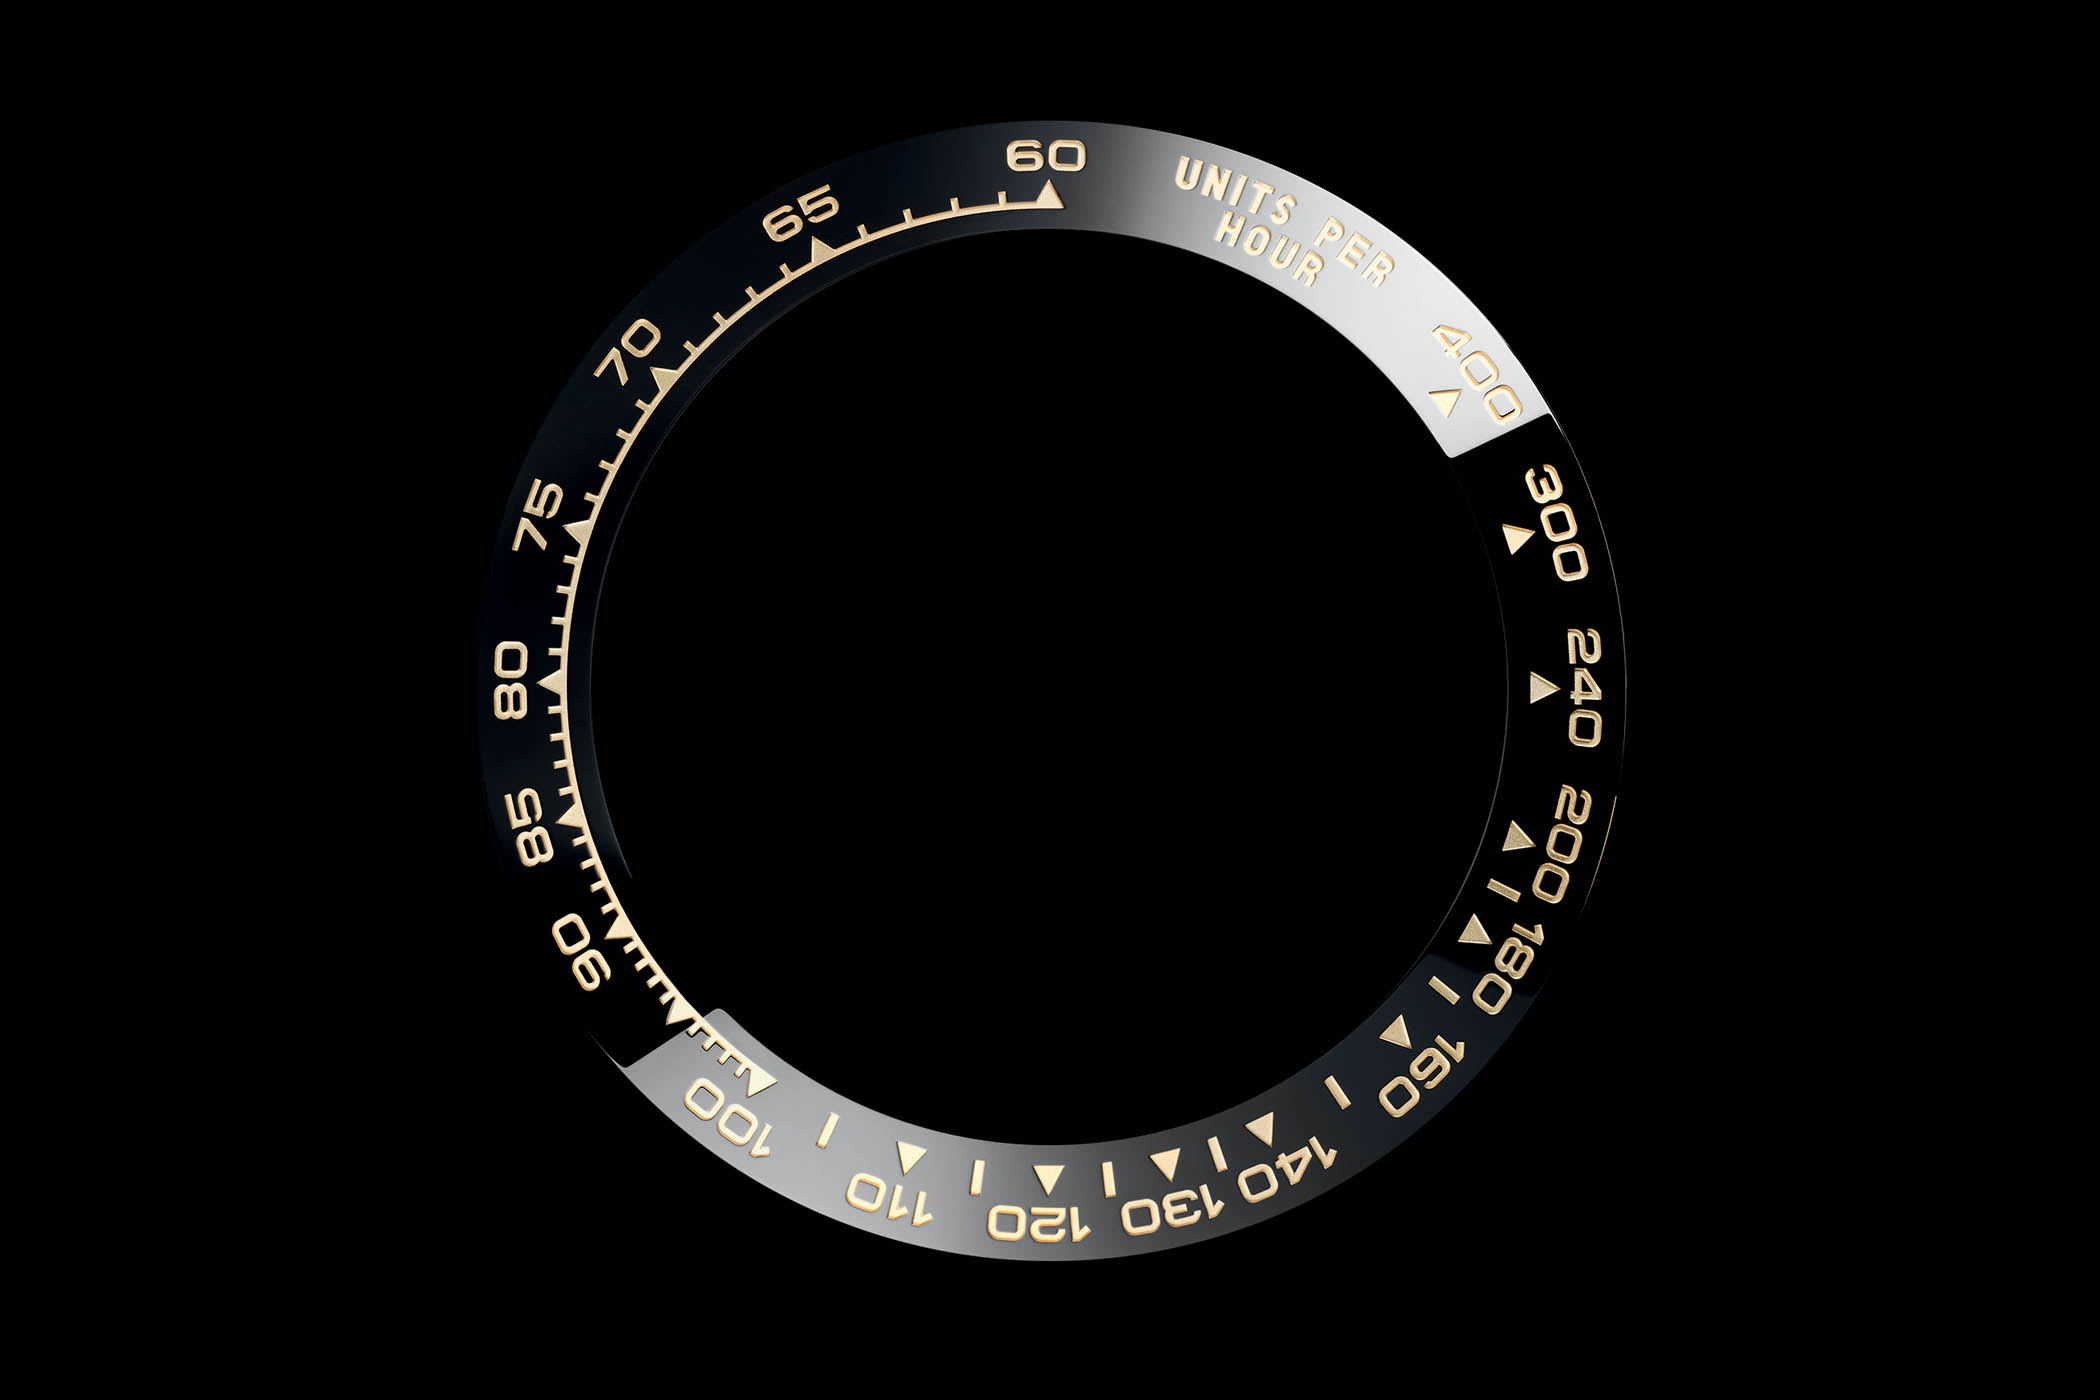 Understanding-the-scales-on-bezels-tachymeter-2.jpg